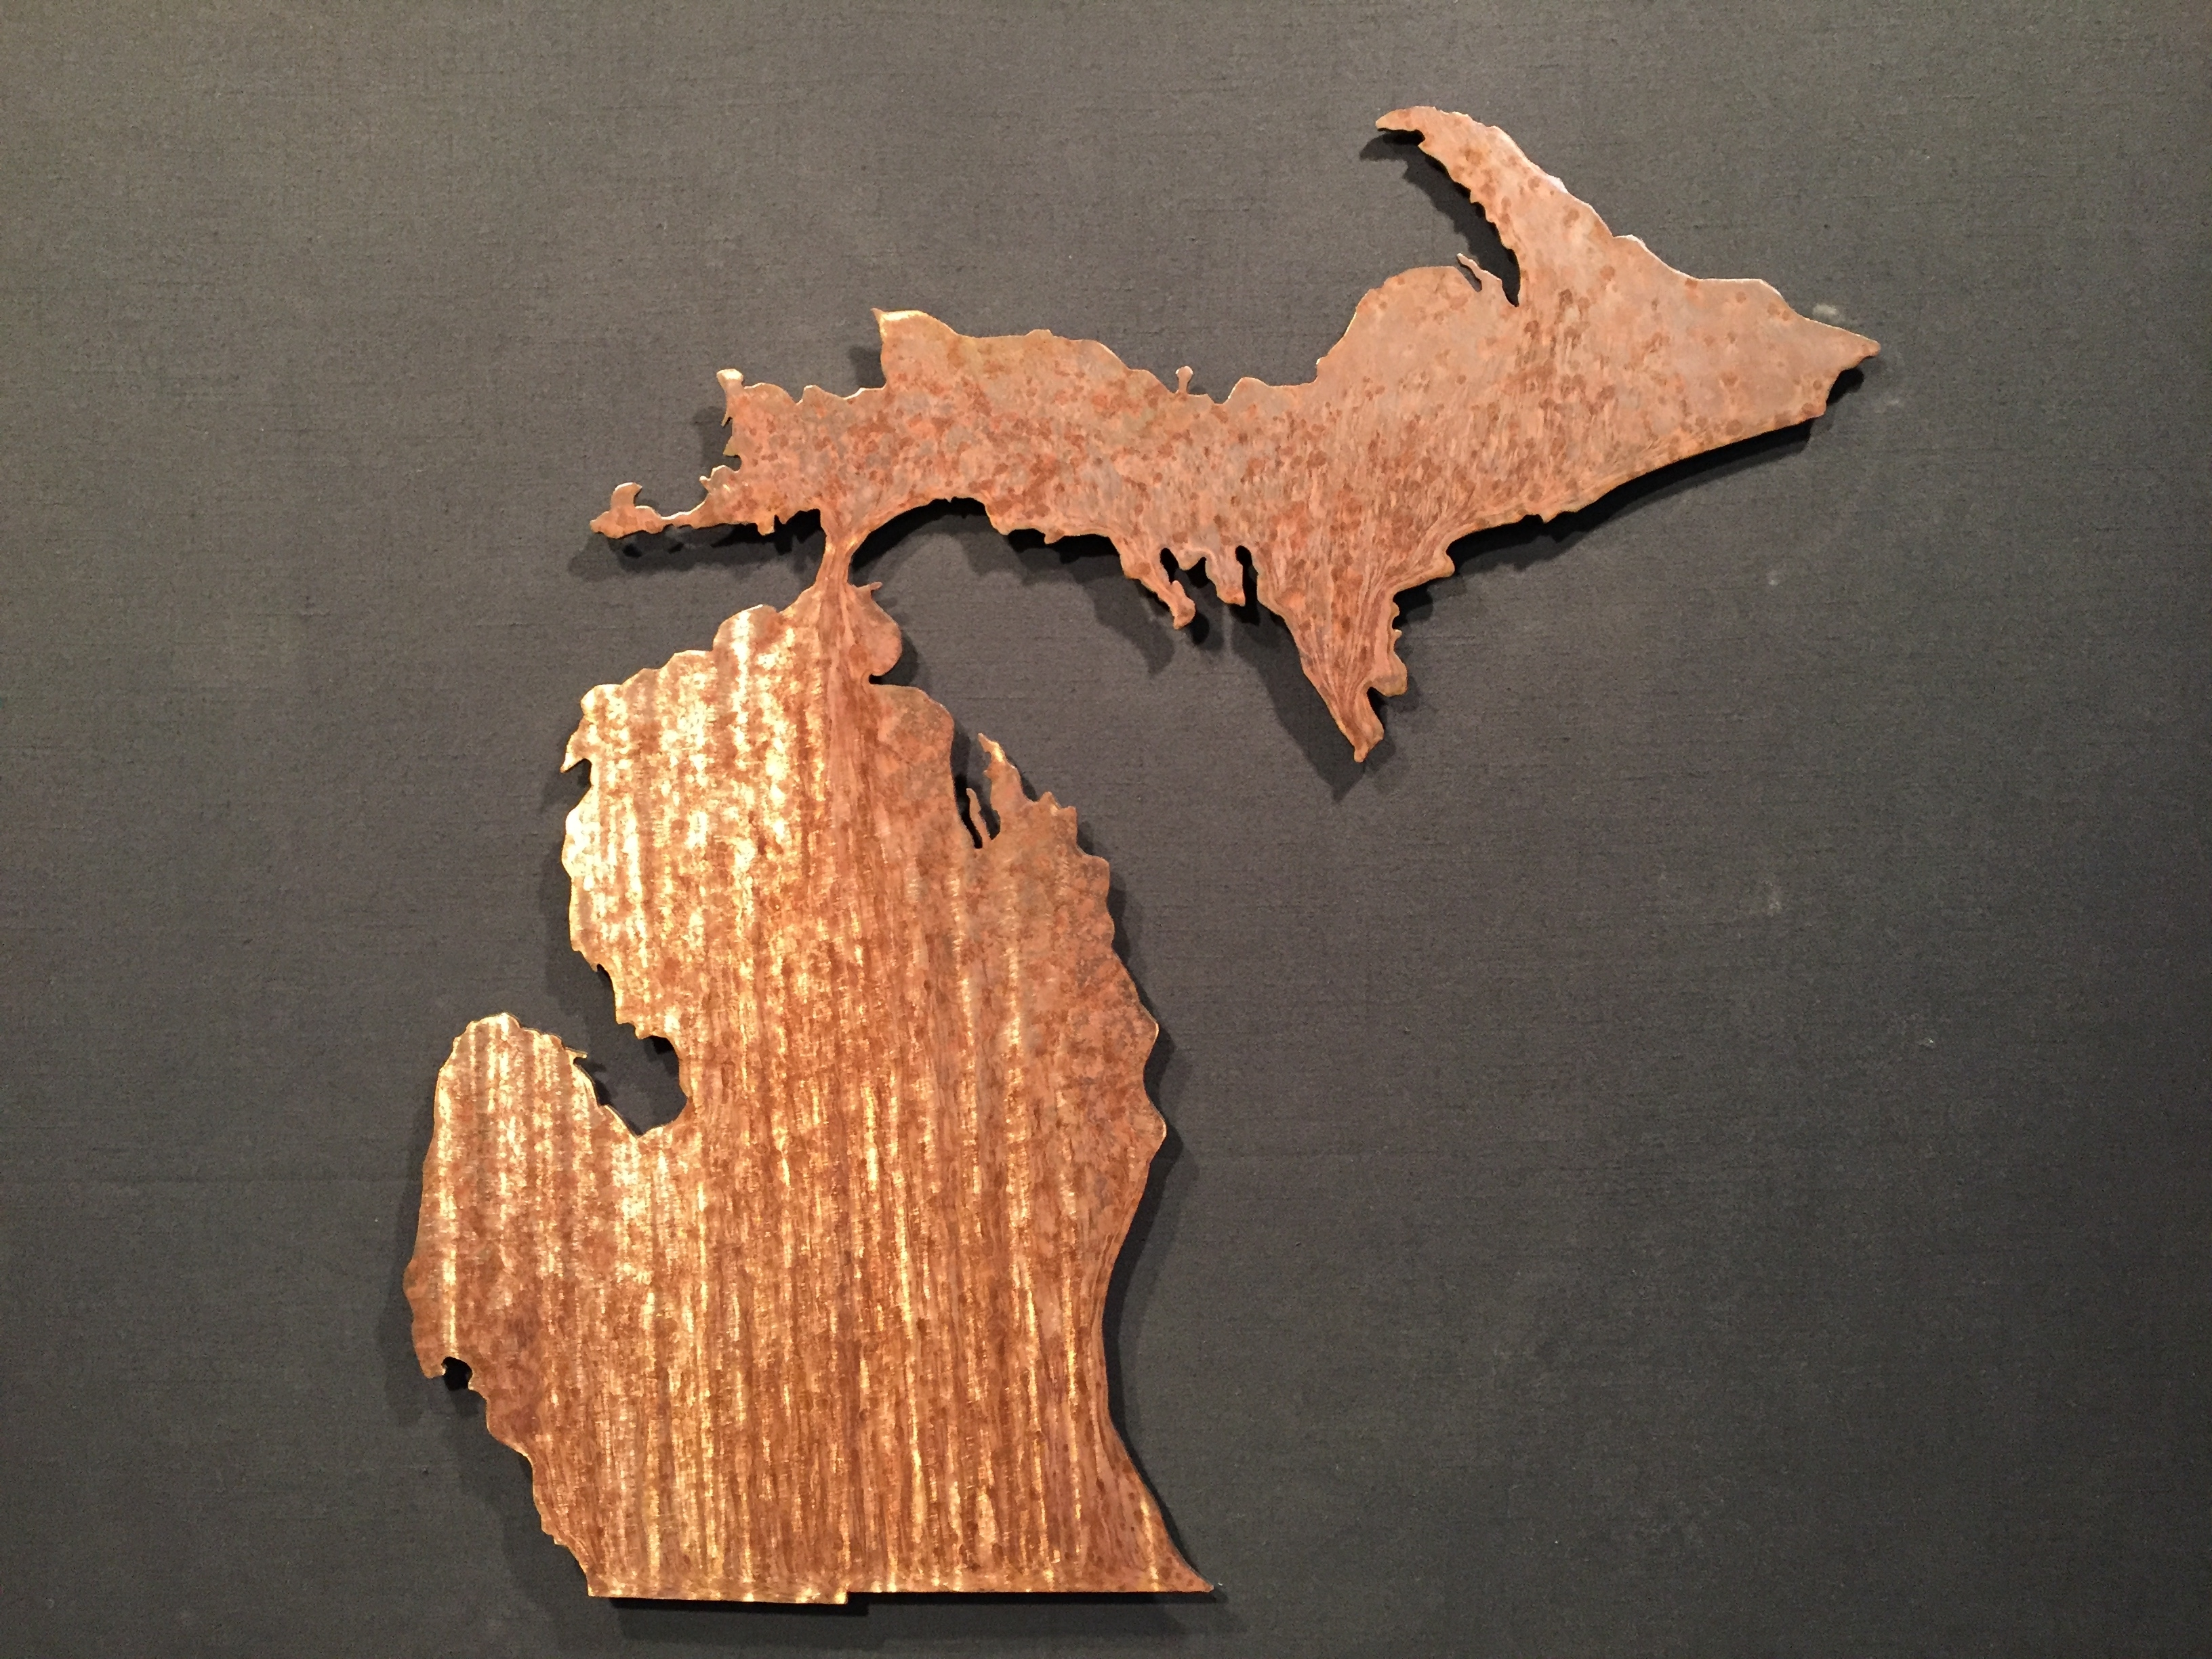 Well Known Michigan Wall Art – Wall Art With Regard To Michigan Wall Art (Gallery 1 of 20)